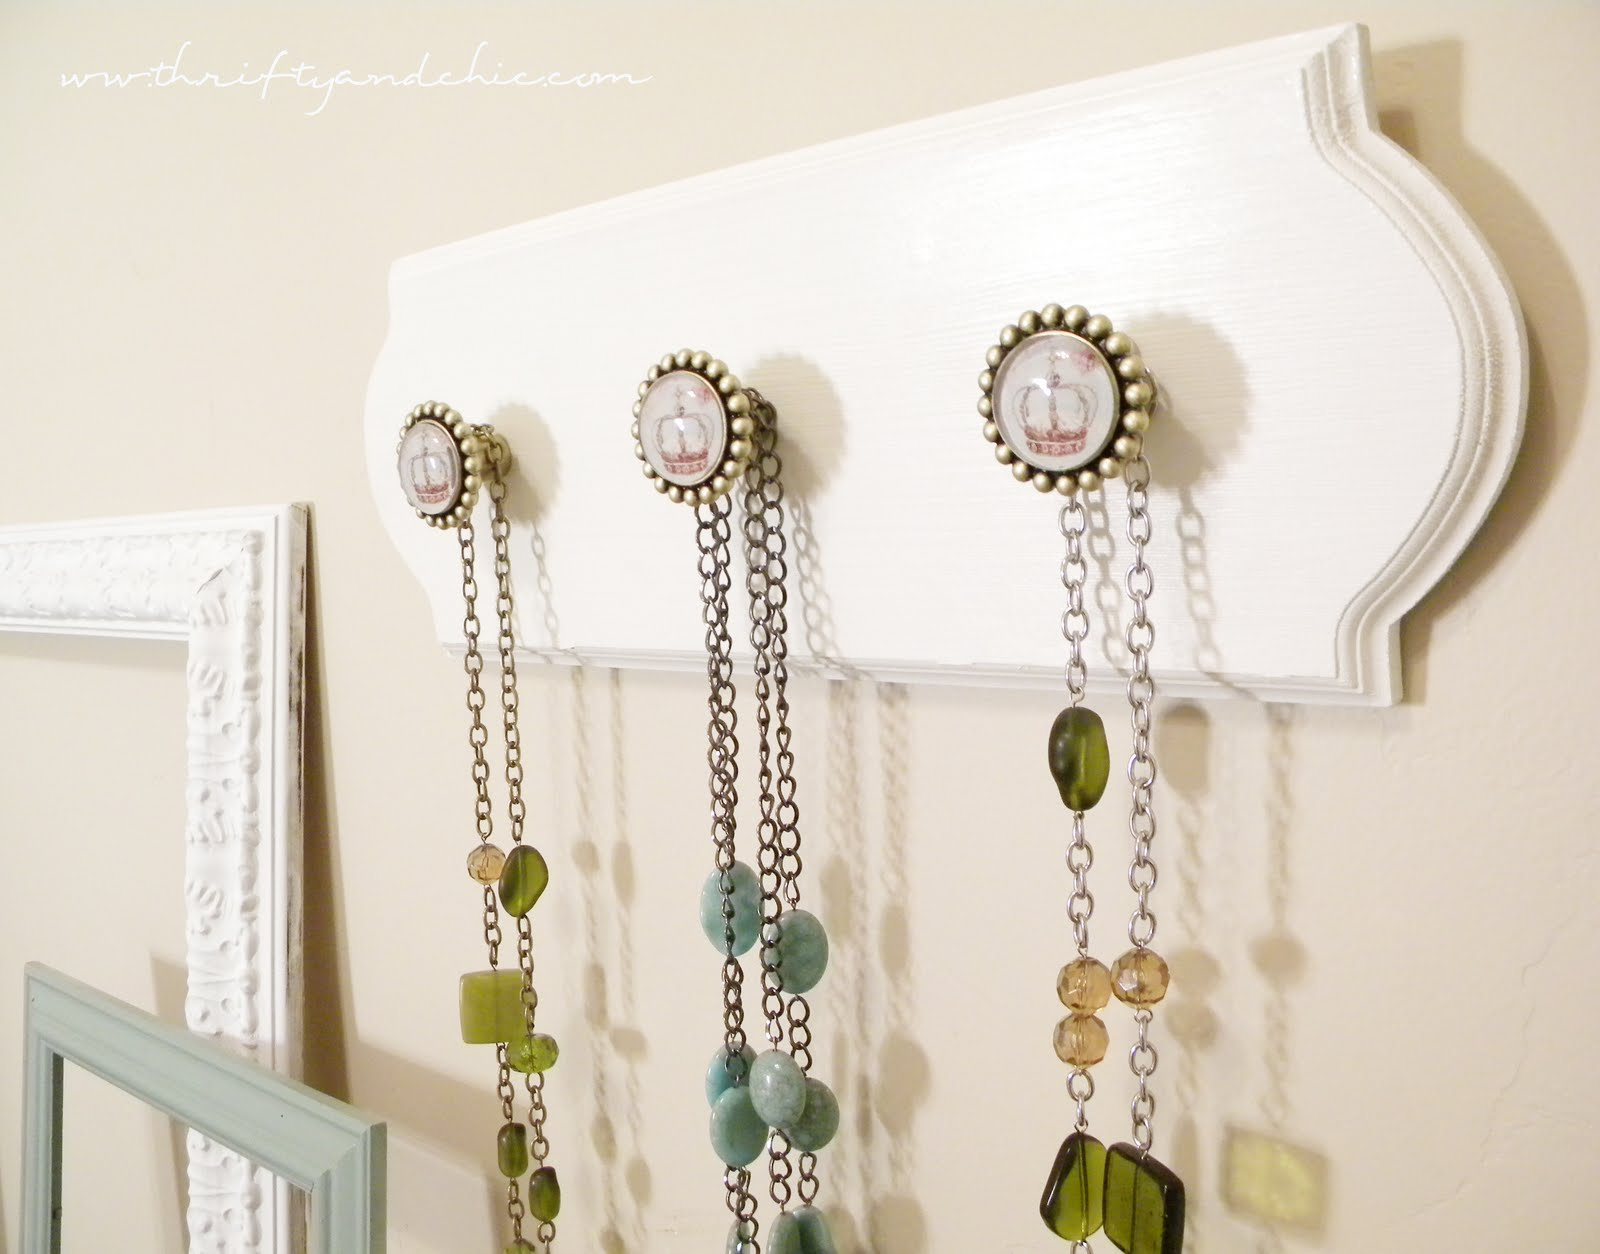 Thrifty and Chic DIY Projects and Home Decor